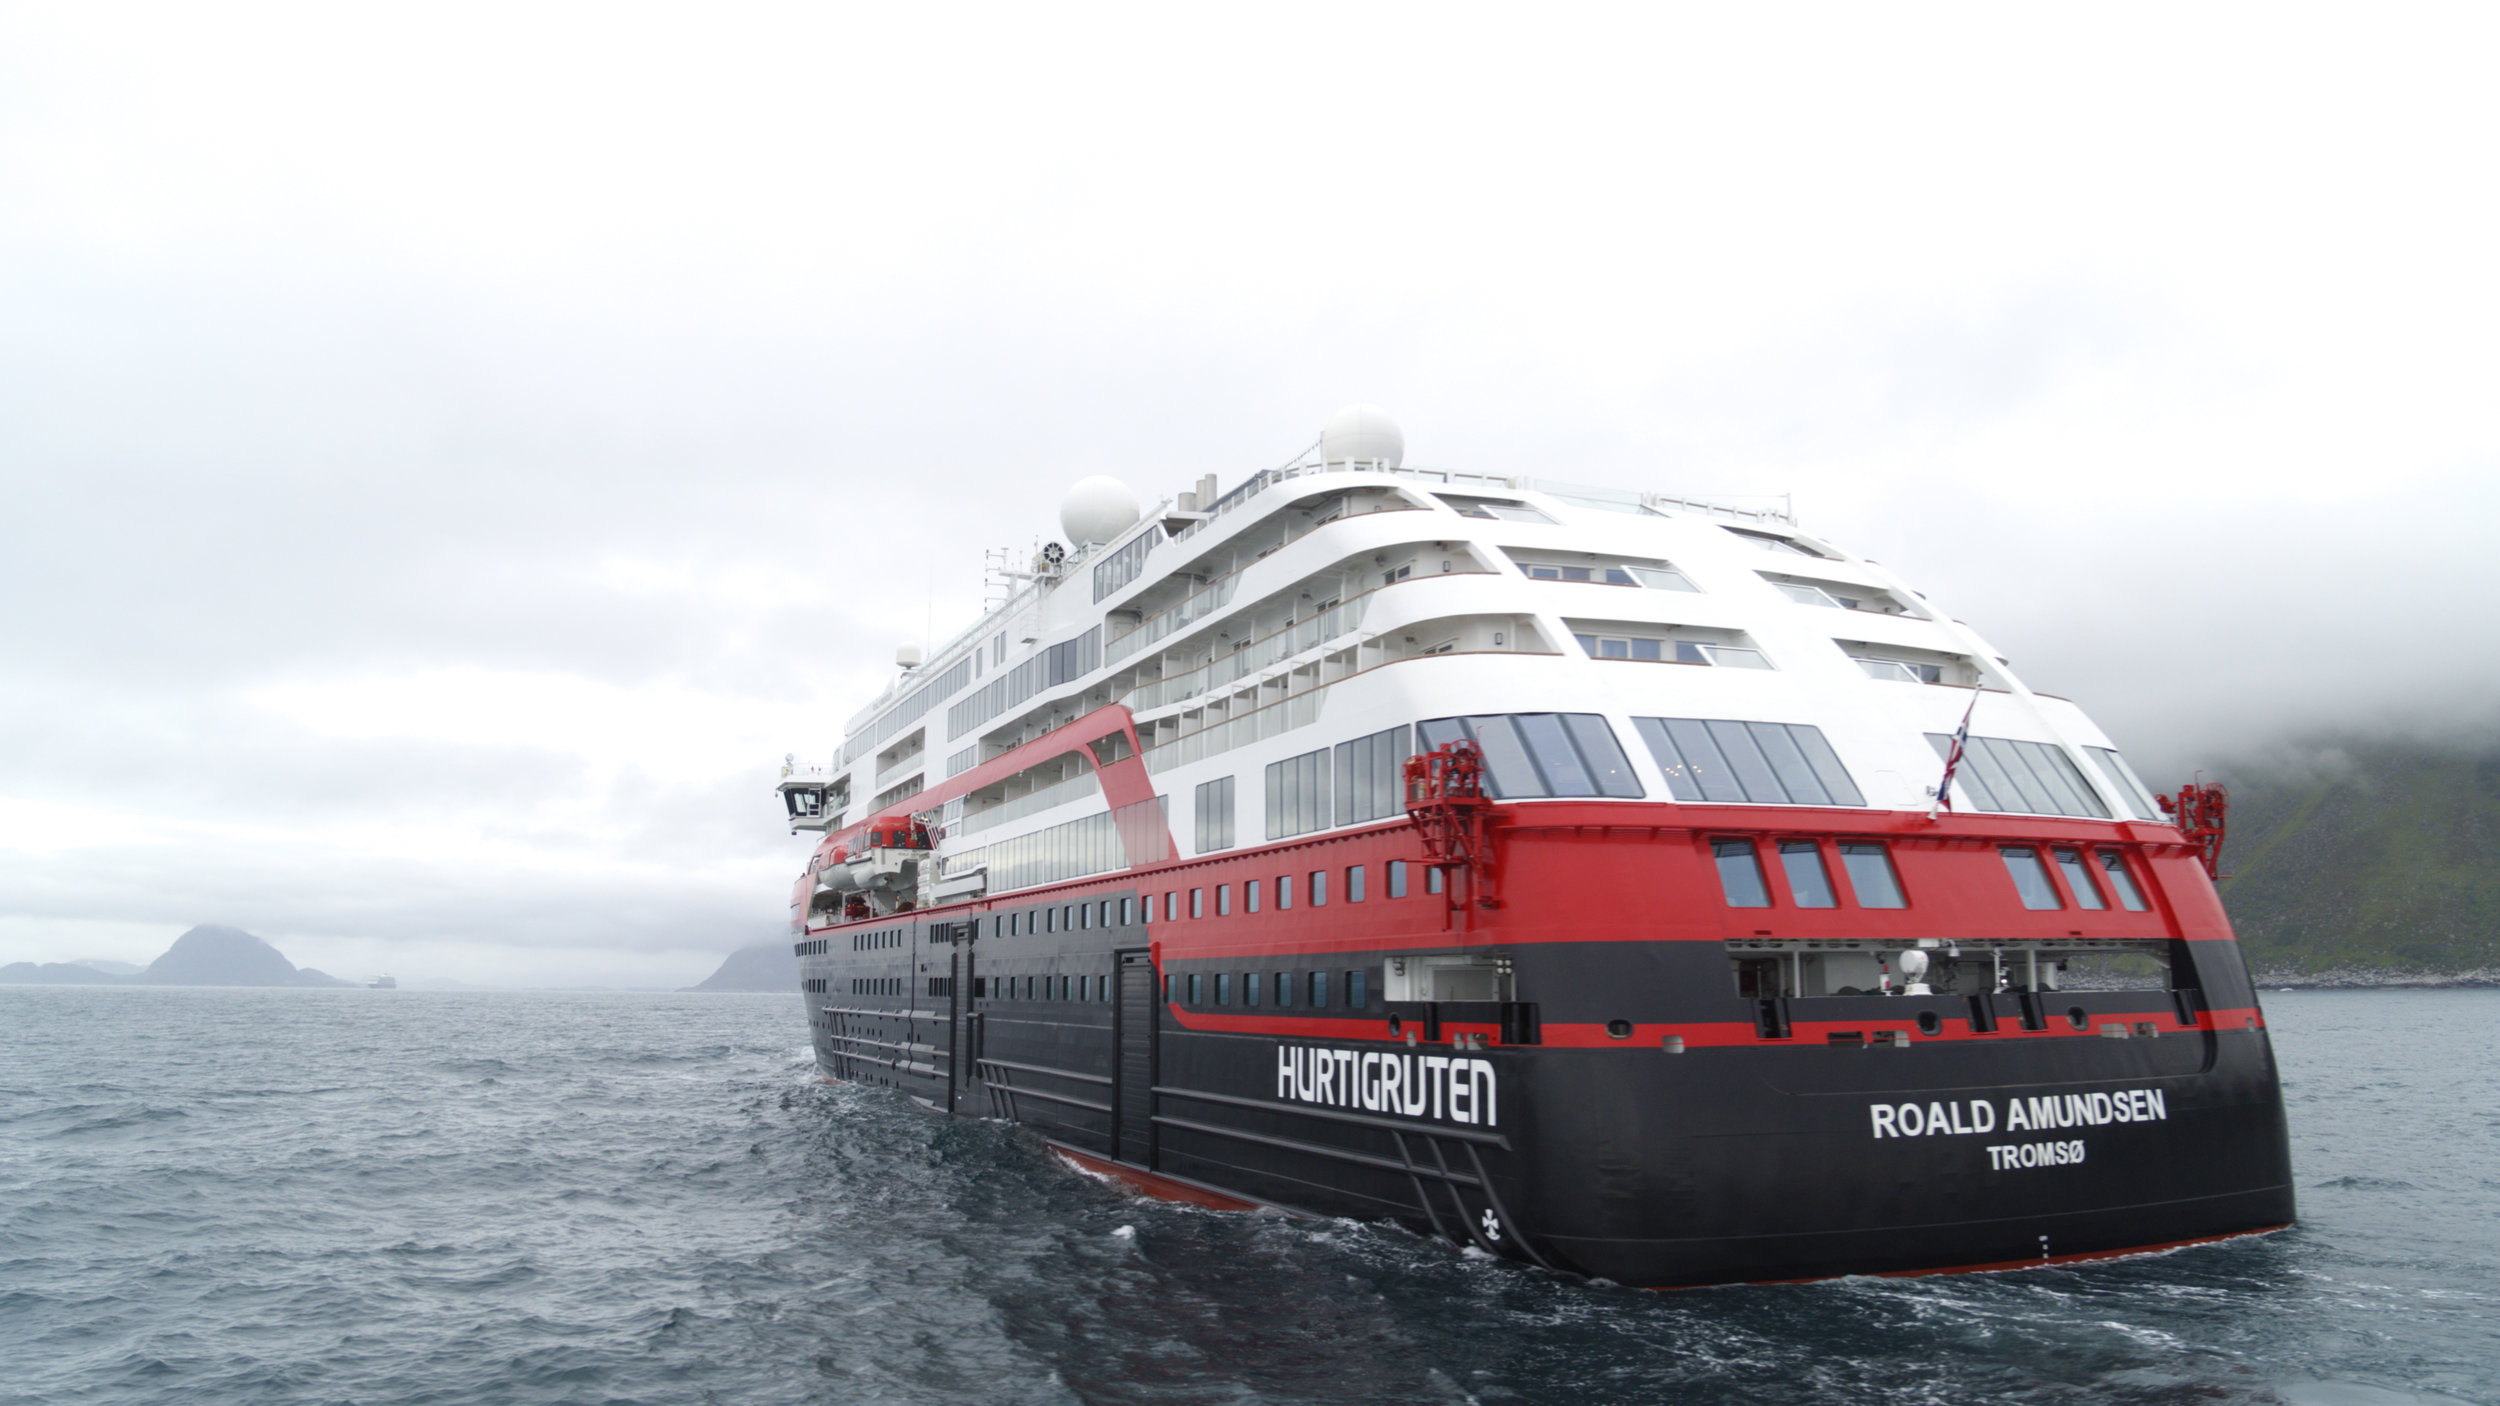 Hurtigruten MS Roald Amundsen 004 - hybrid powered - photo Hurtigruten.jpg